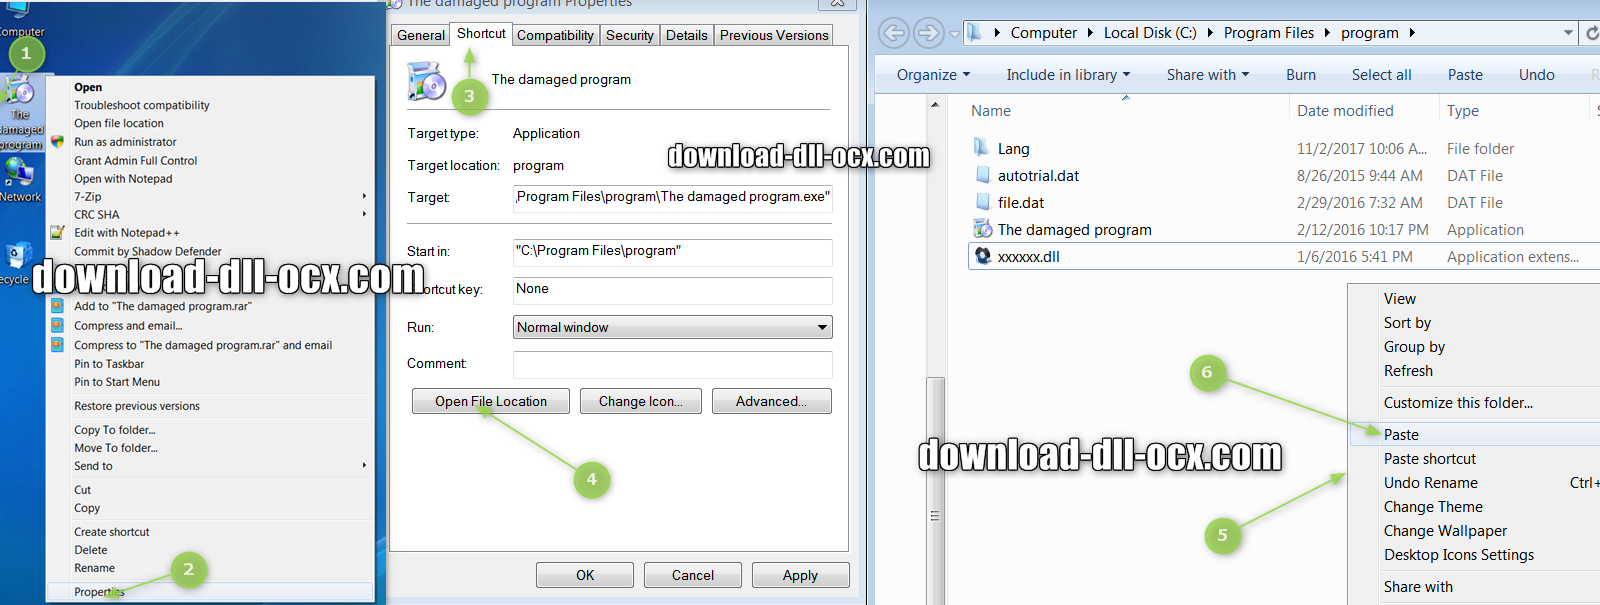 how to install transmngr.dll file? for fix missing